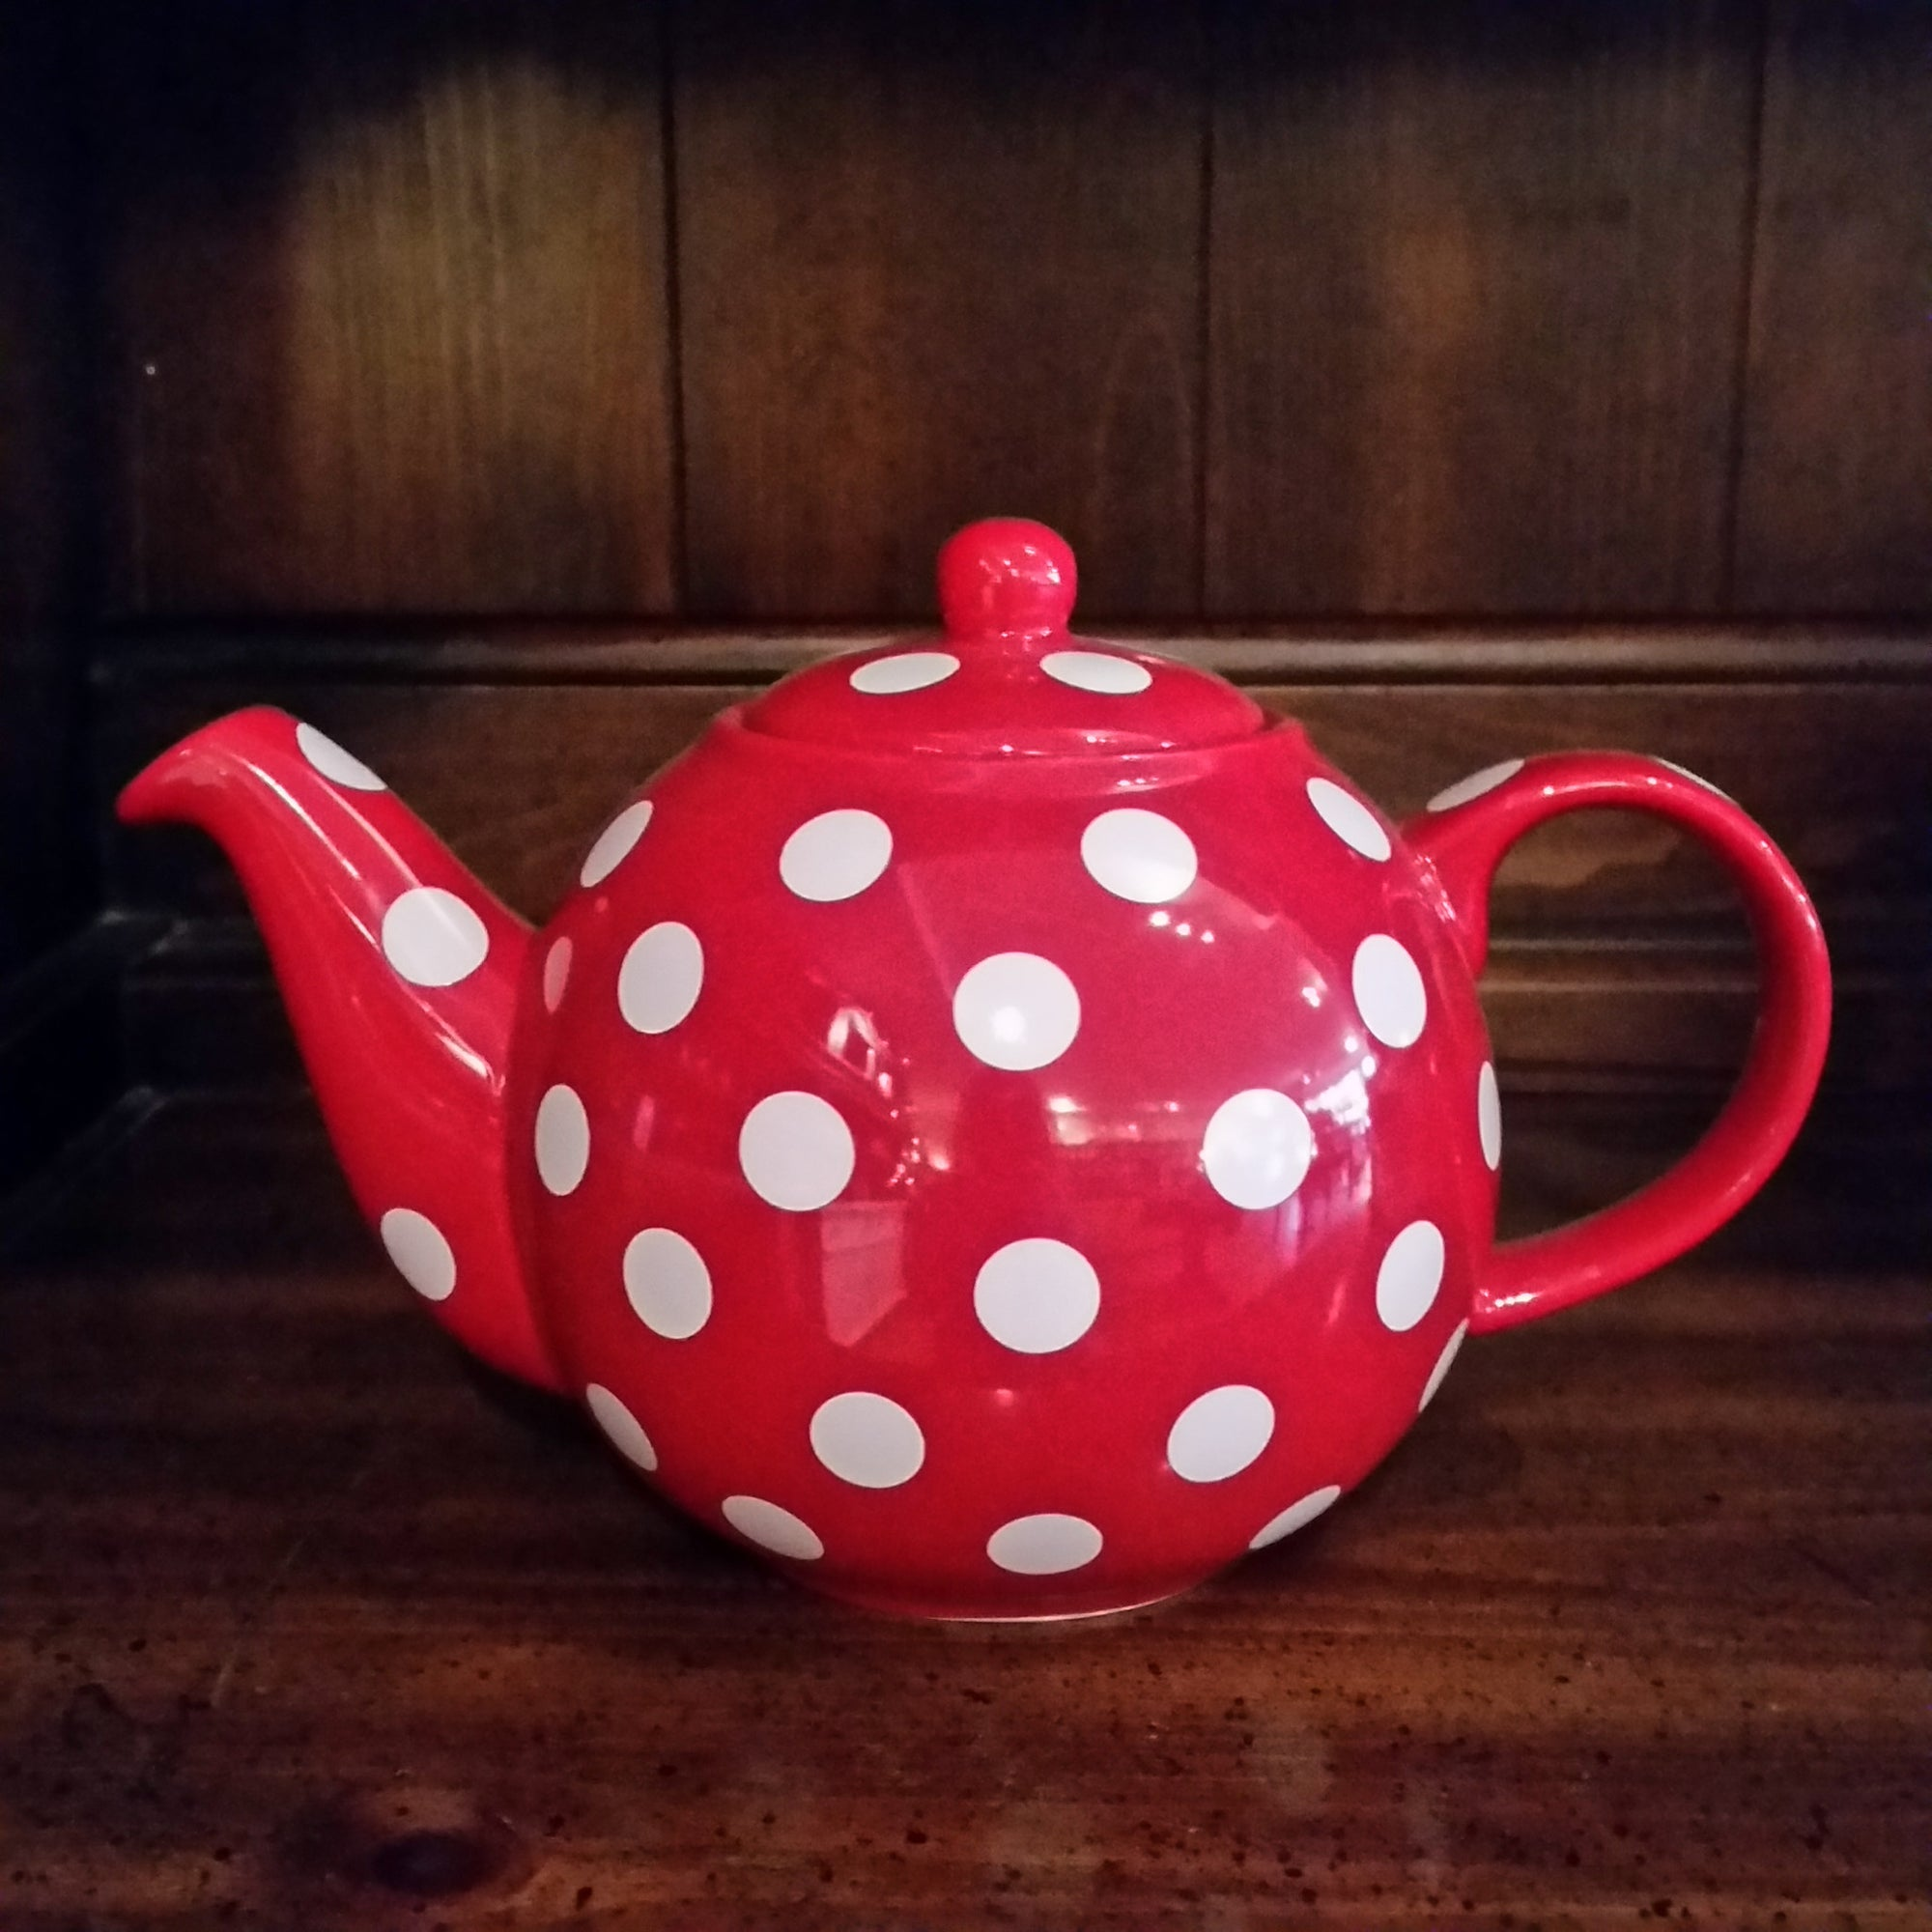 6 Cup Teapot - Red Polka Dot - The Tea & Spice Shoppe